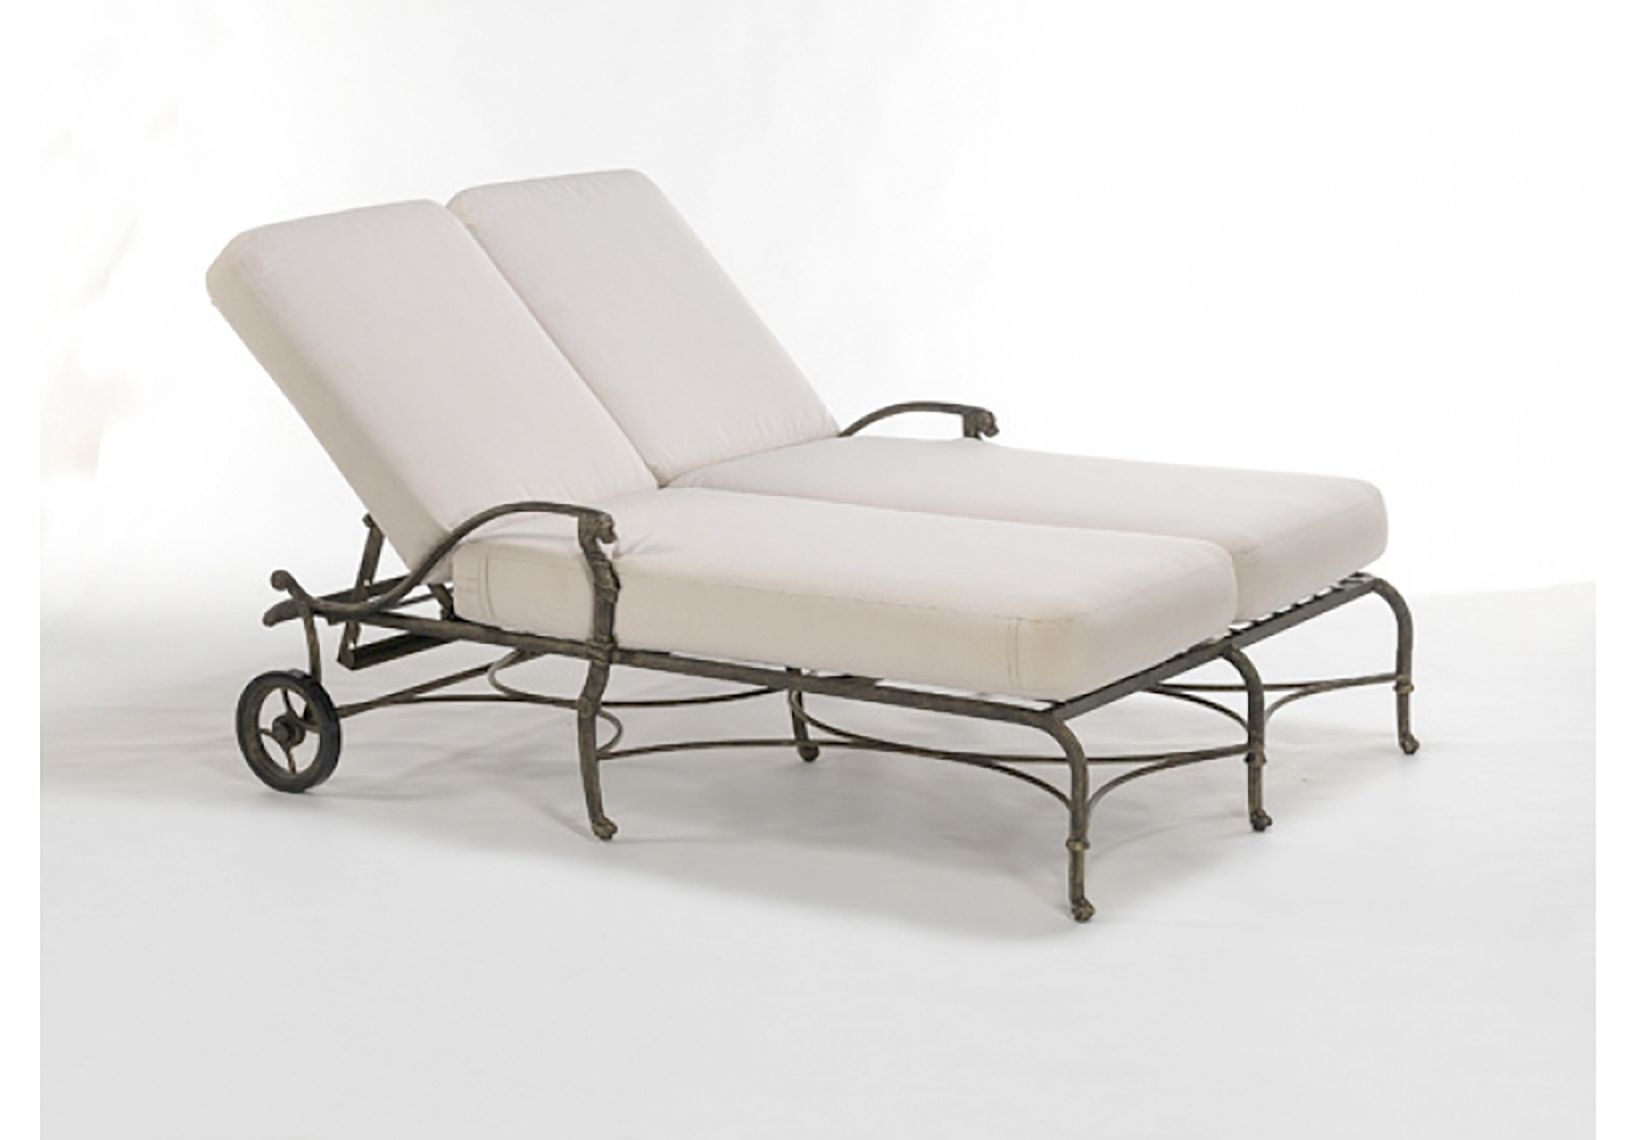 Oxleys Luxor Double Lounger Weathered Furniture Furniture